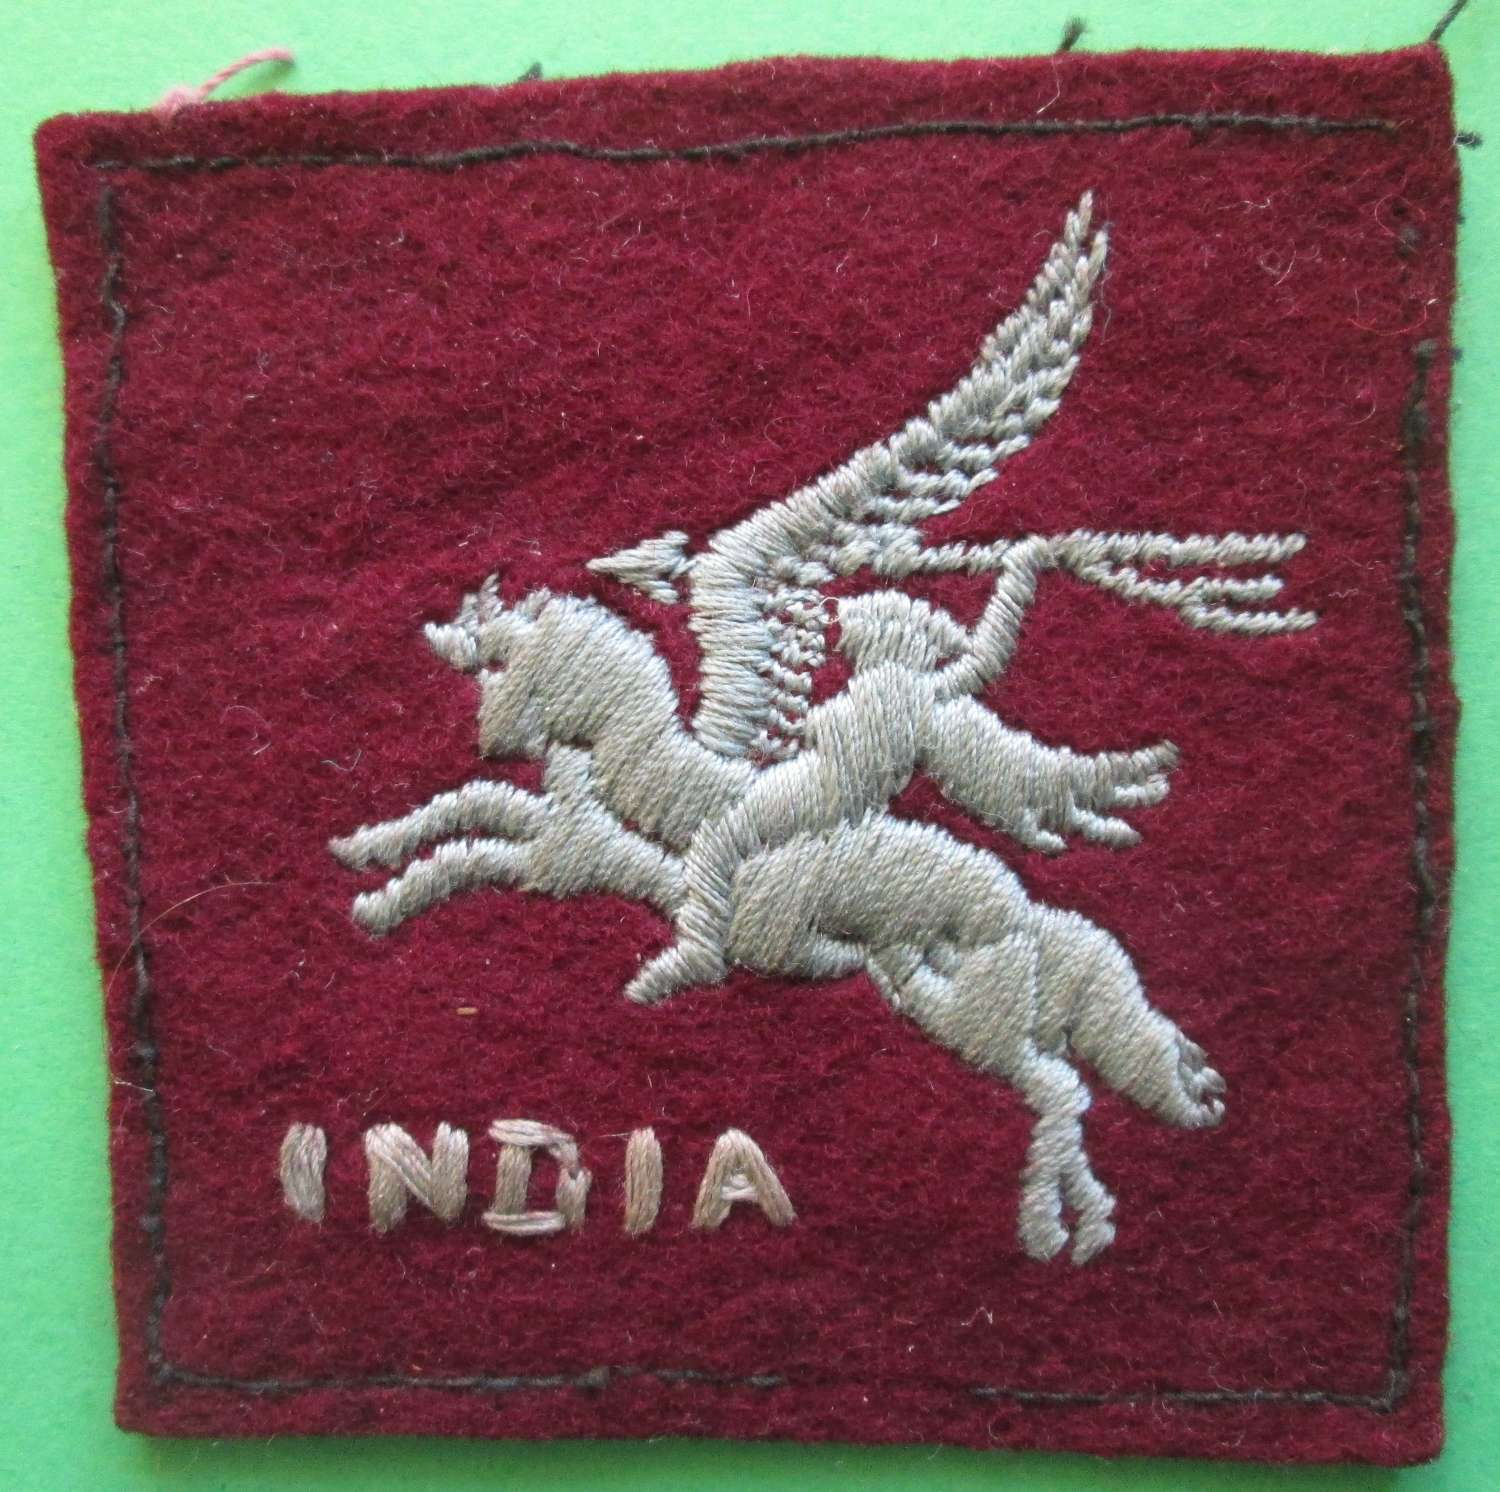 A 44TH INDIA AIRBOURNE DIVISION SIGN